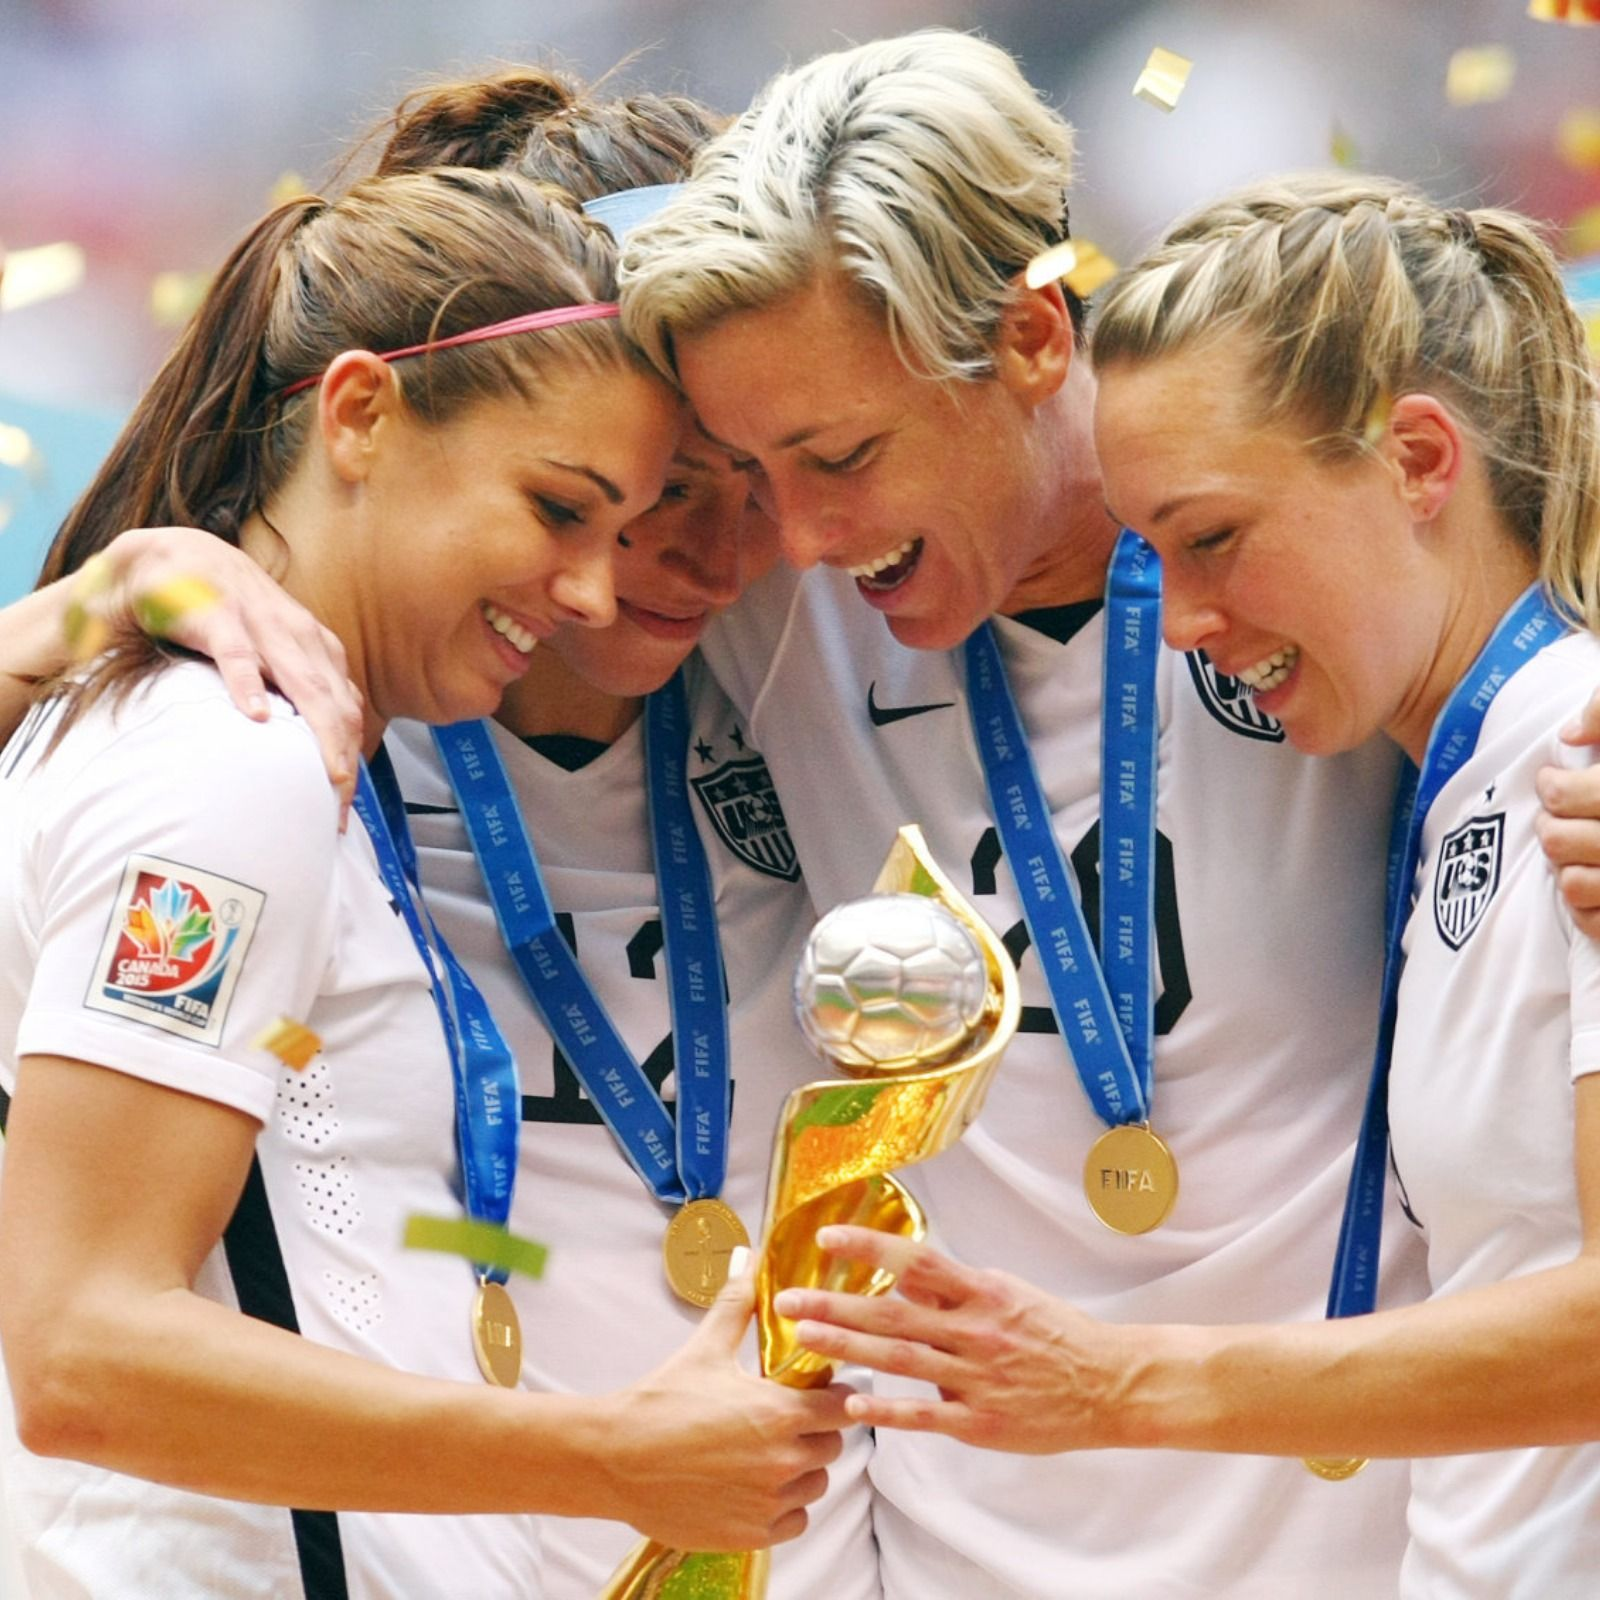 Fifa 2019 Women S World Cup Schedule Live Football Online Streaming Scores Updates Live Scores Fifa Women S World Cup 2019 Match Usa Soccer Women Women S Soccer Team Womens Soccer